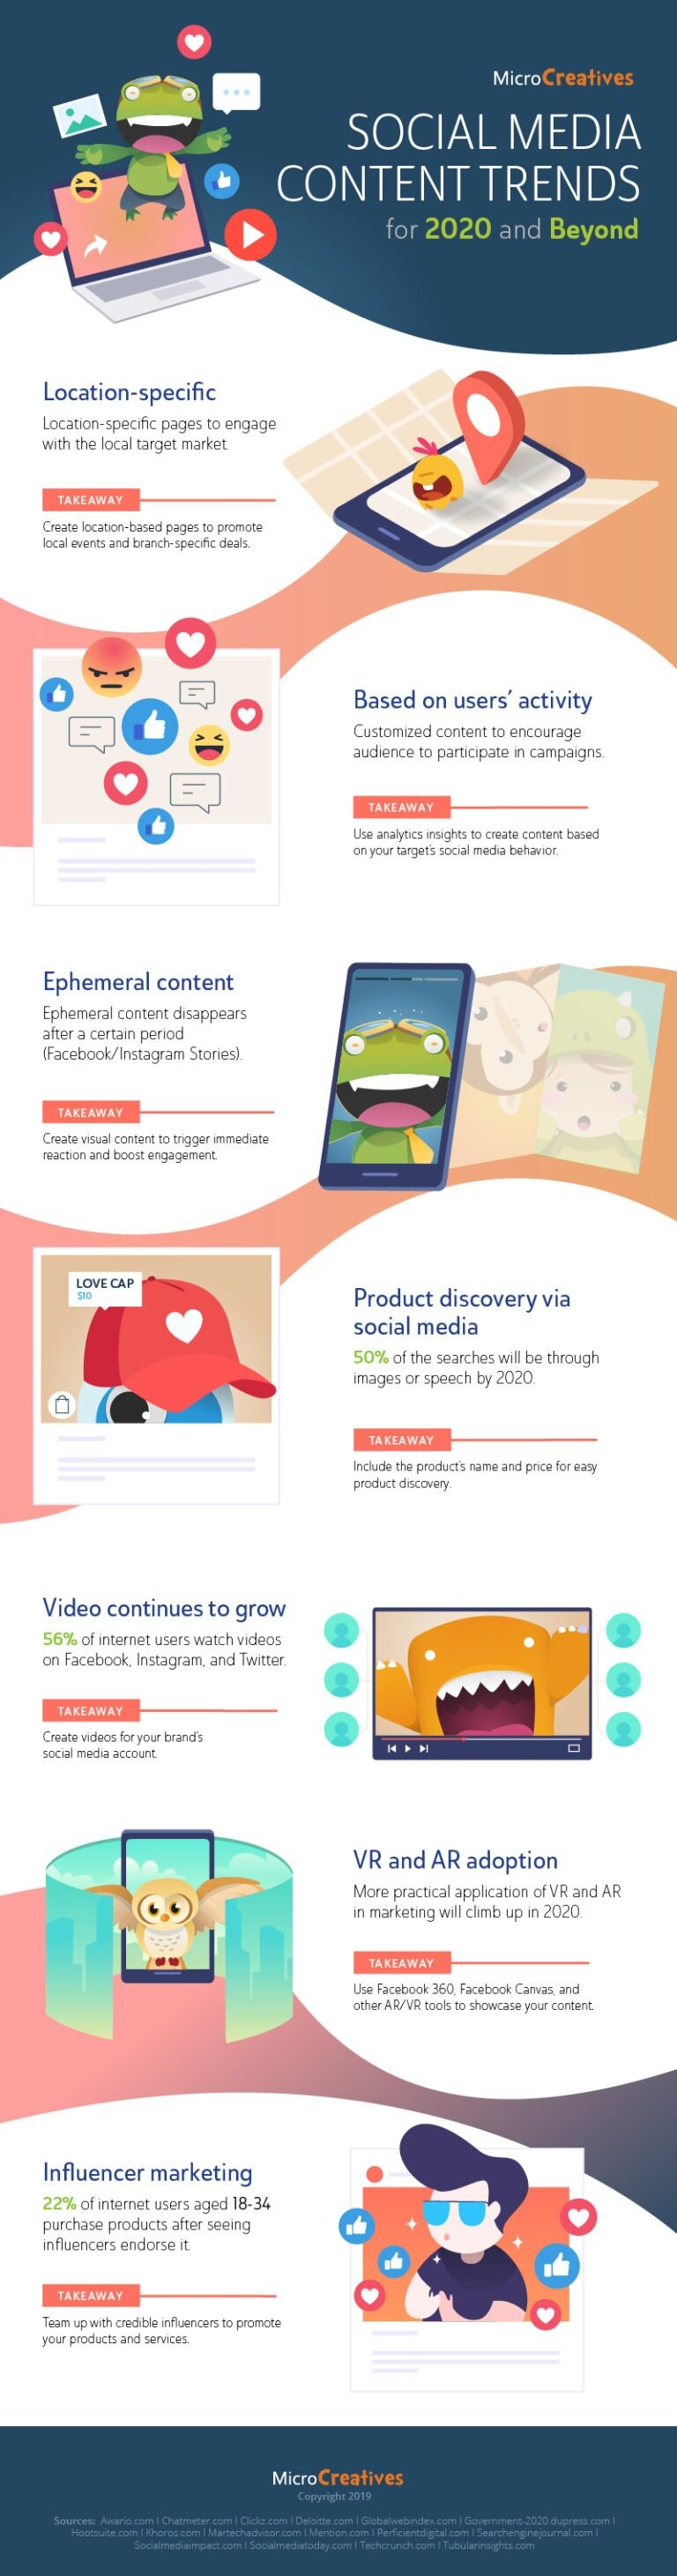 Social Media Content Trends for 2020 and Beyond infographic